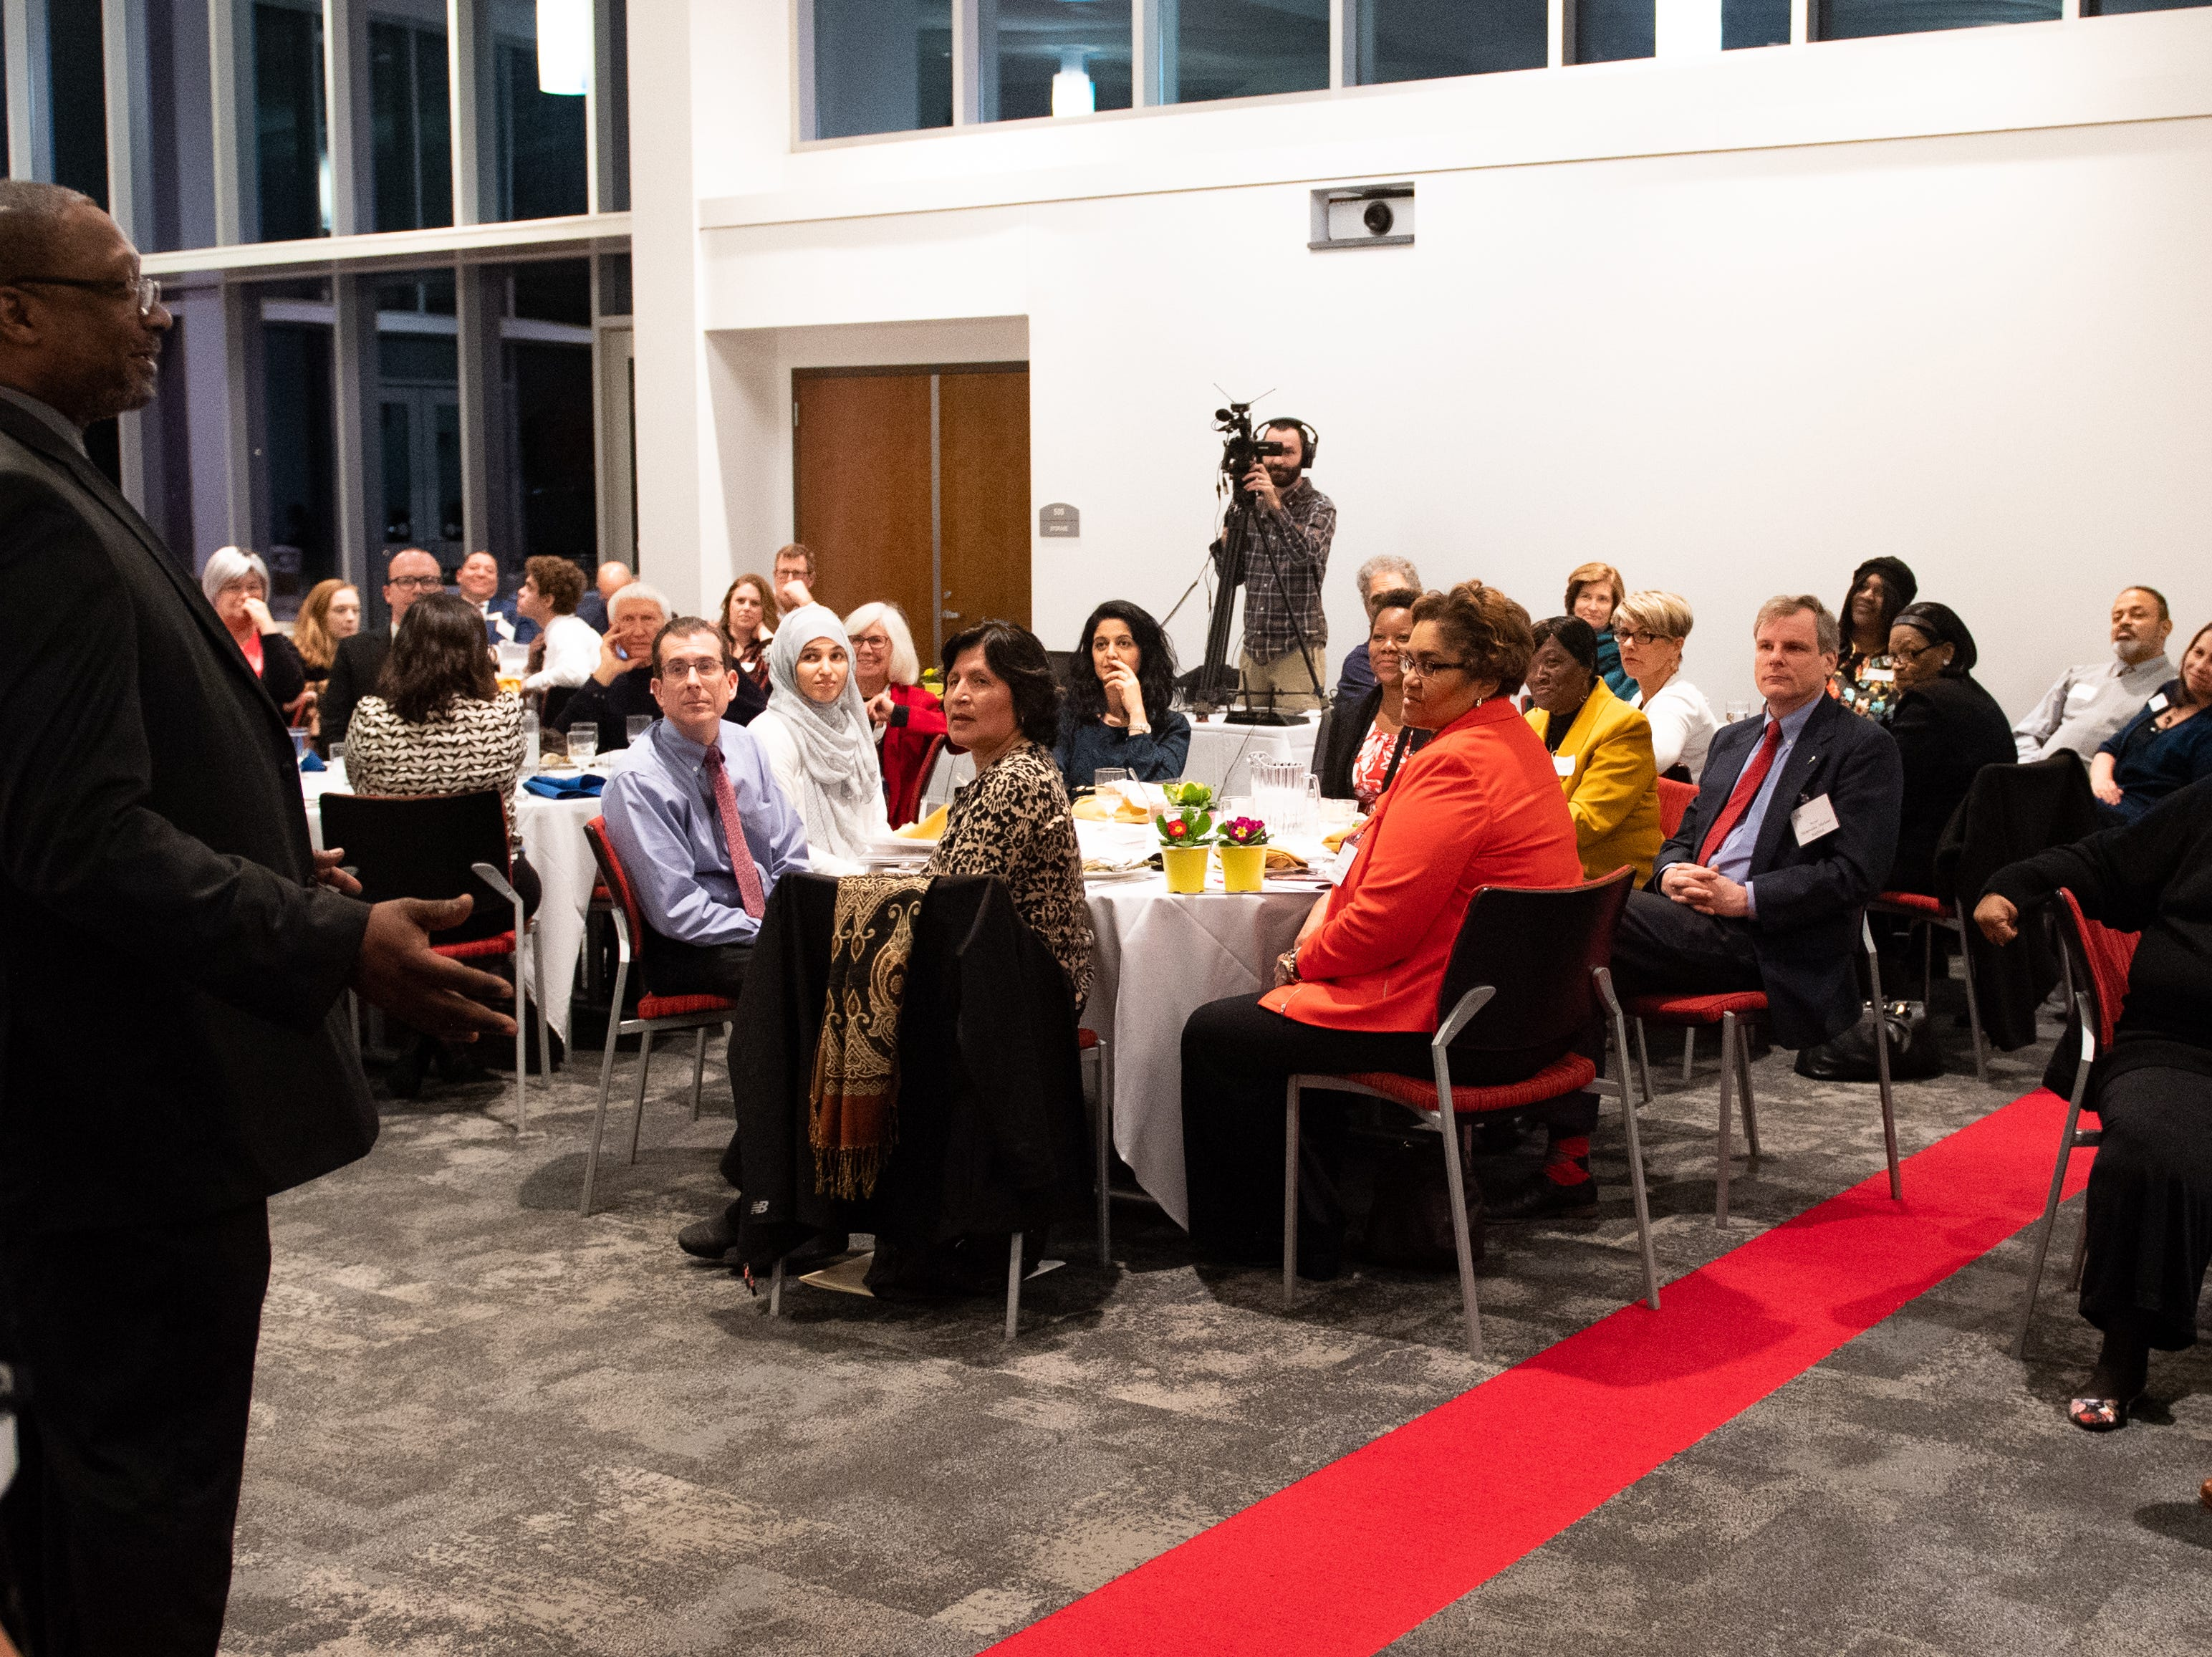 The Diversity Dinner was live streamed, so those absent from the evening could still watch, January 9, 2019.